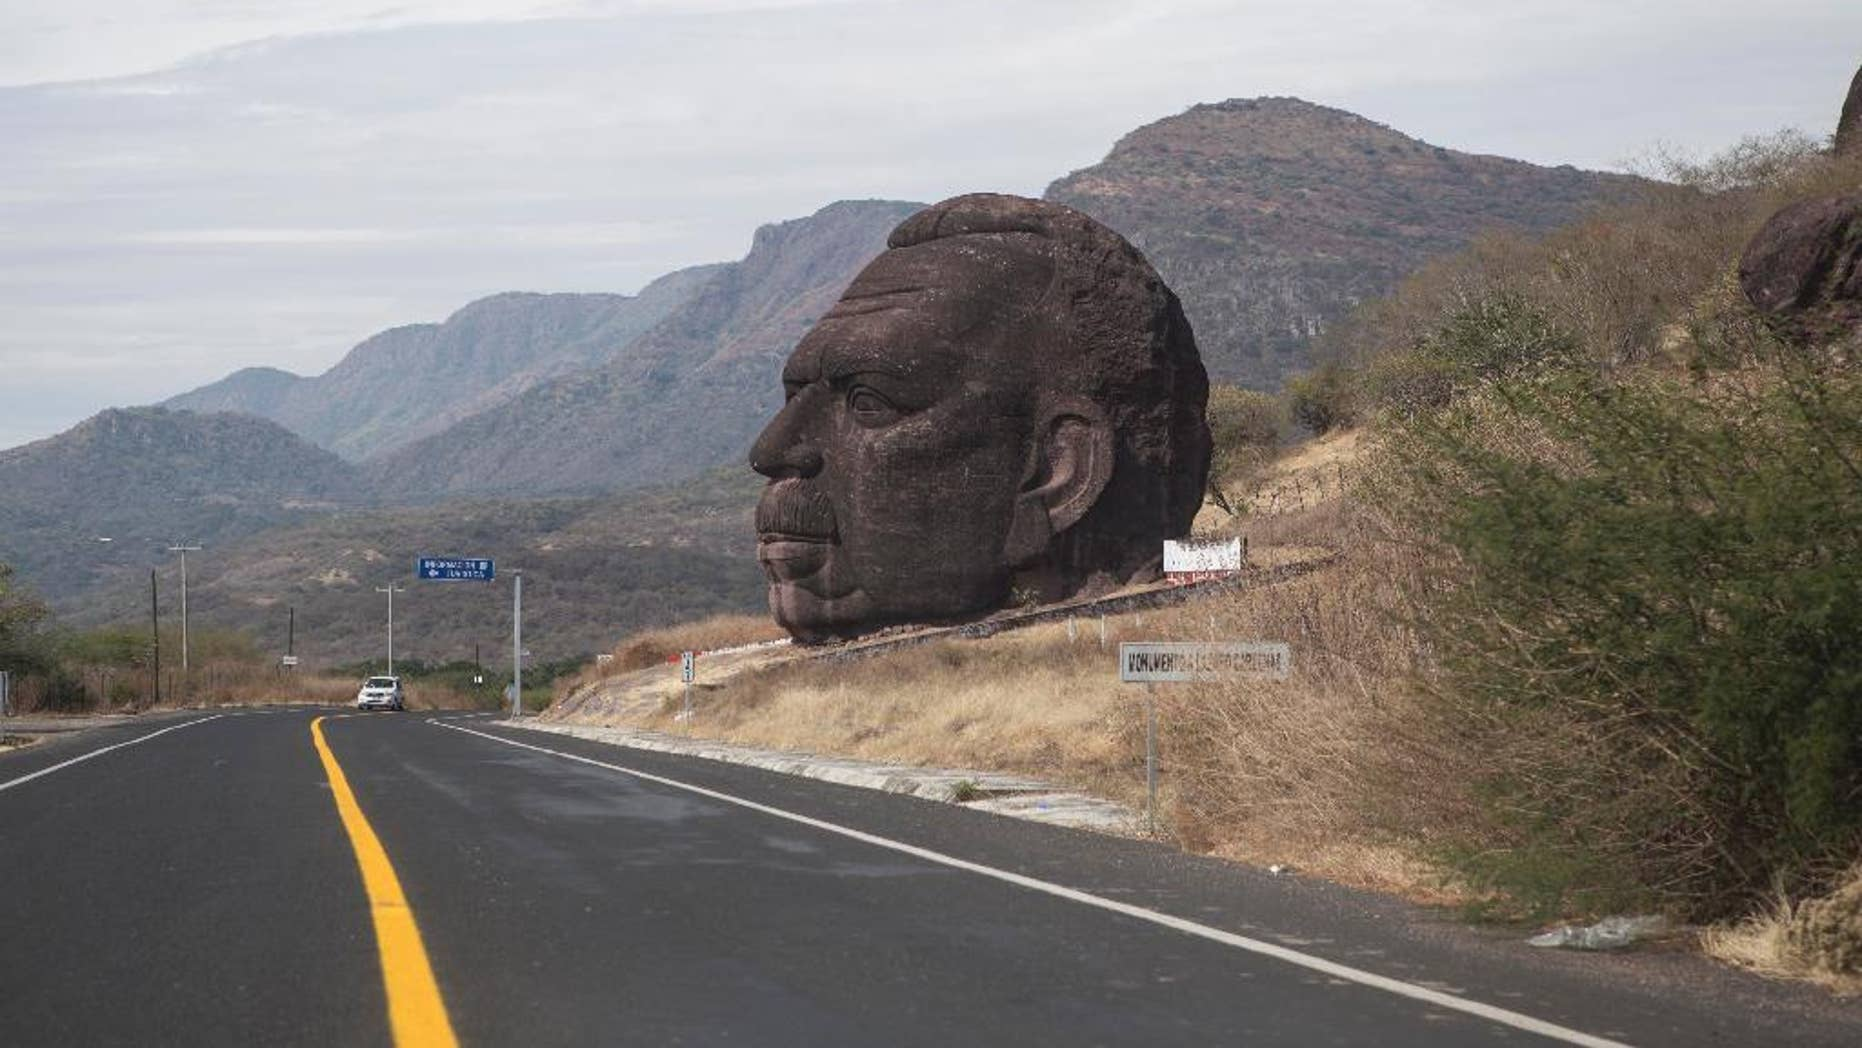 In this Tuesday, Dec. 23, 2014 photo, a monument in honor of Mexico's former President Lazaro Cardenas stands along a highway between Arcelia and Ciudad Altamirano on the state border of Guerrero and Michoacan, Mexico. The bishop of the diocese in Ciudad Altamirano said Friday, Dec. 26 that the Rev. Gregorio Lopez Gorostieta was found dead with a gunshot wound to the head, near this statue, on Christmas Day. Gorostieta disappeared on Monday from the seminary in the city where he taught. (AP Photo/Christian Palma)